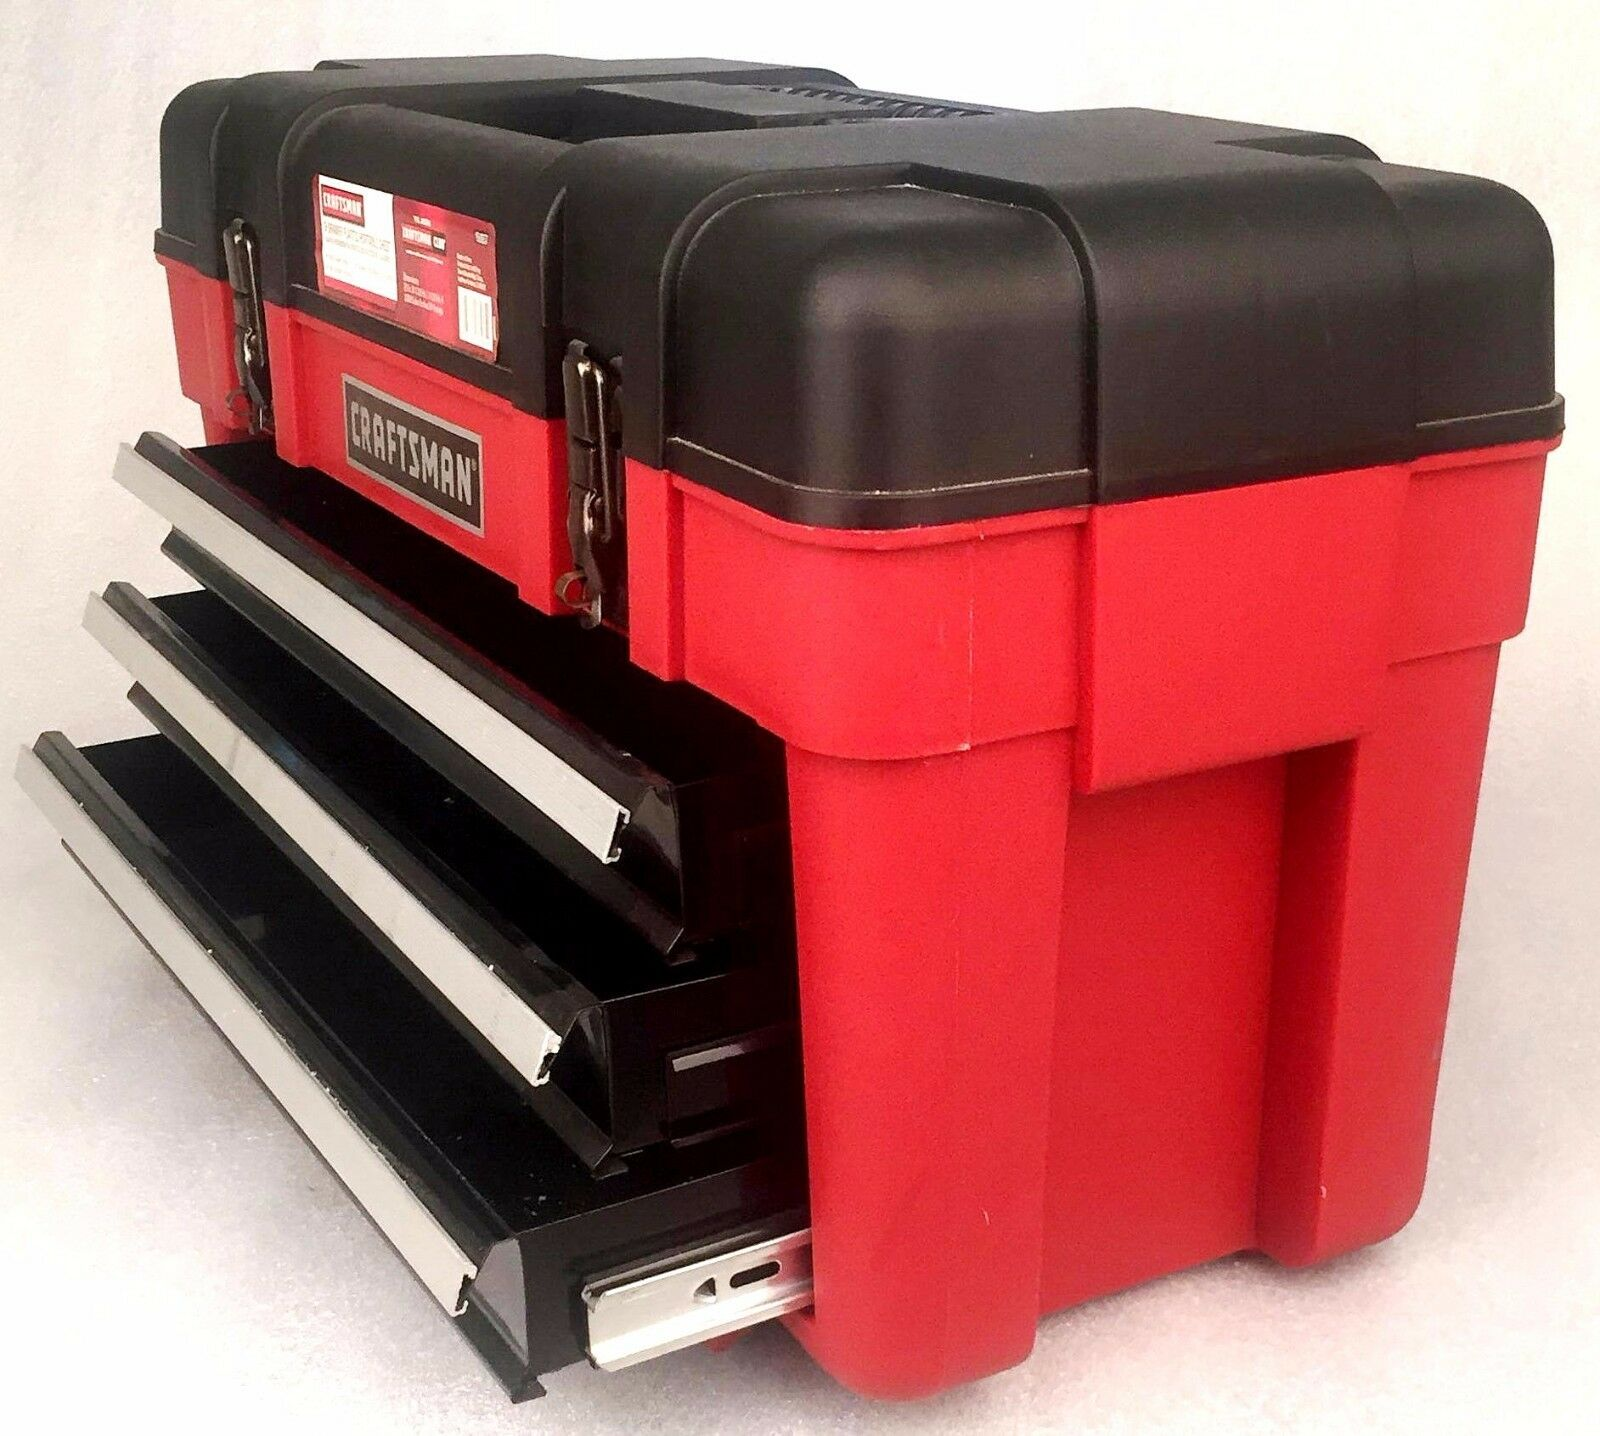 Home depot craftsman tool box best soap to use for car wash